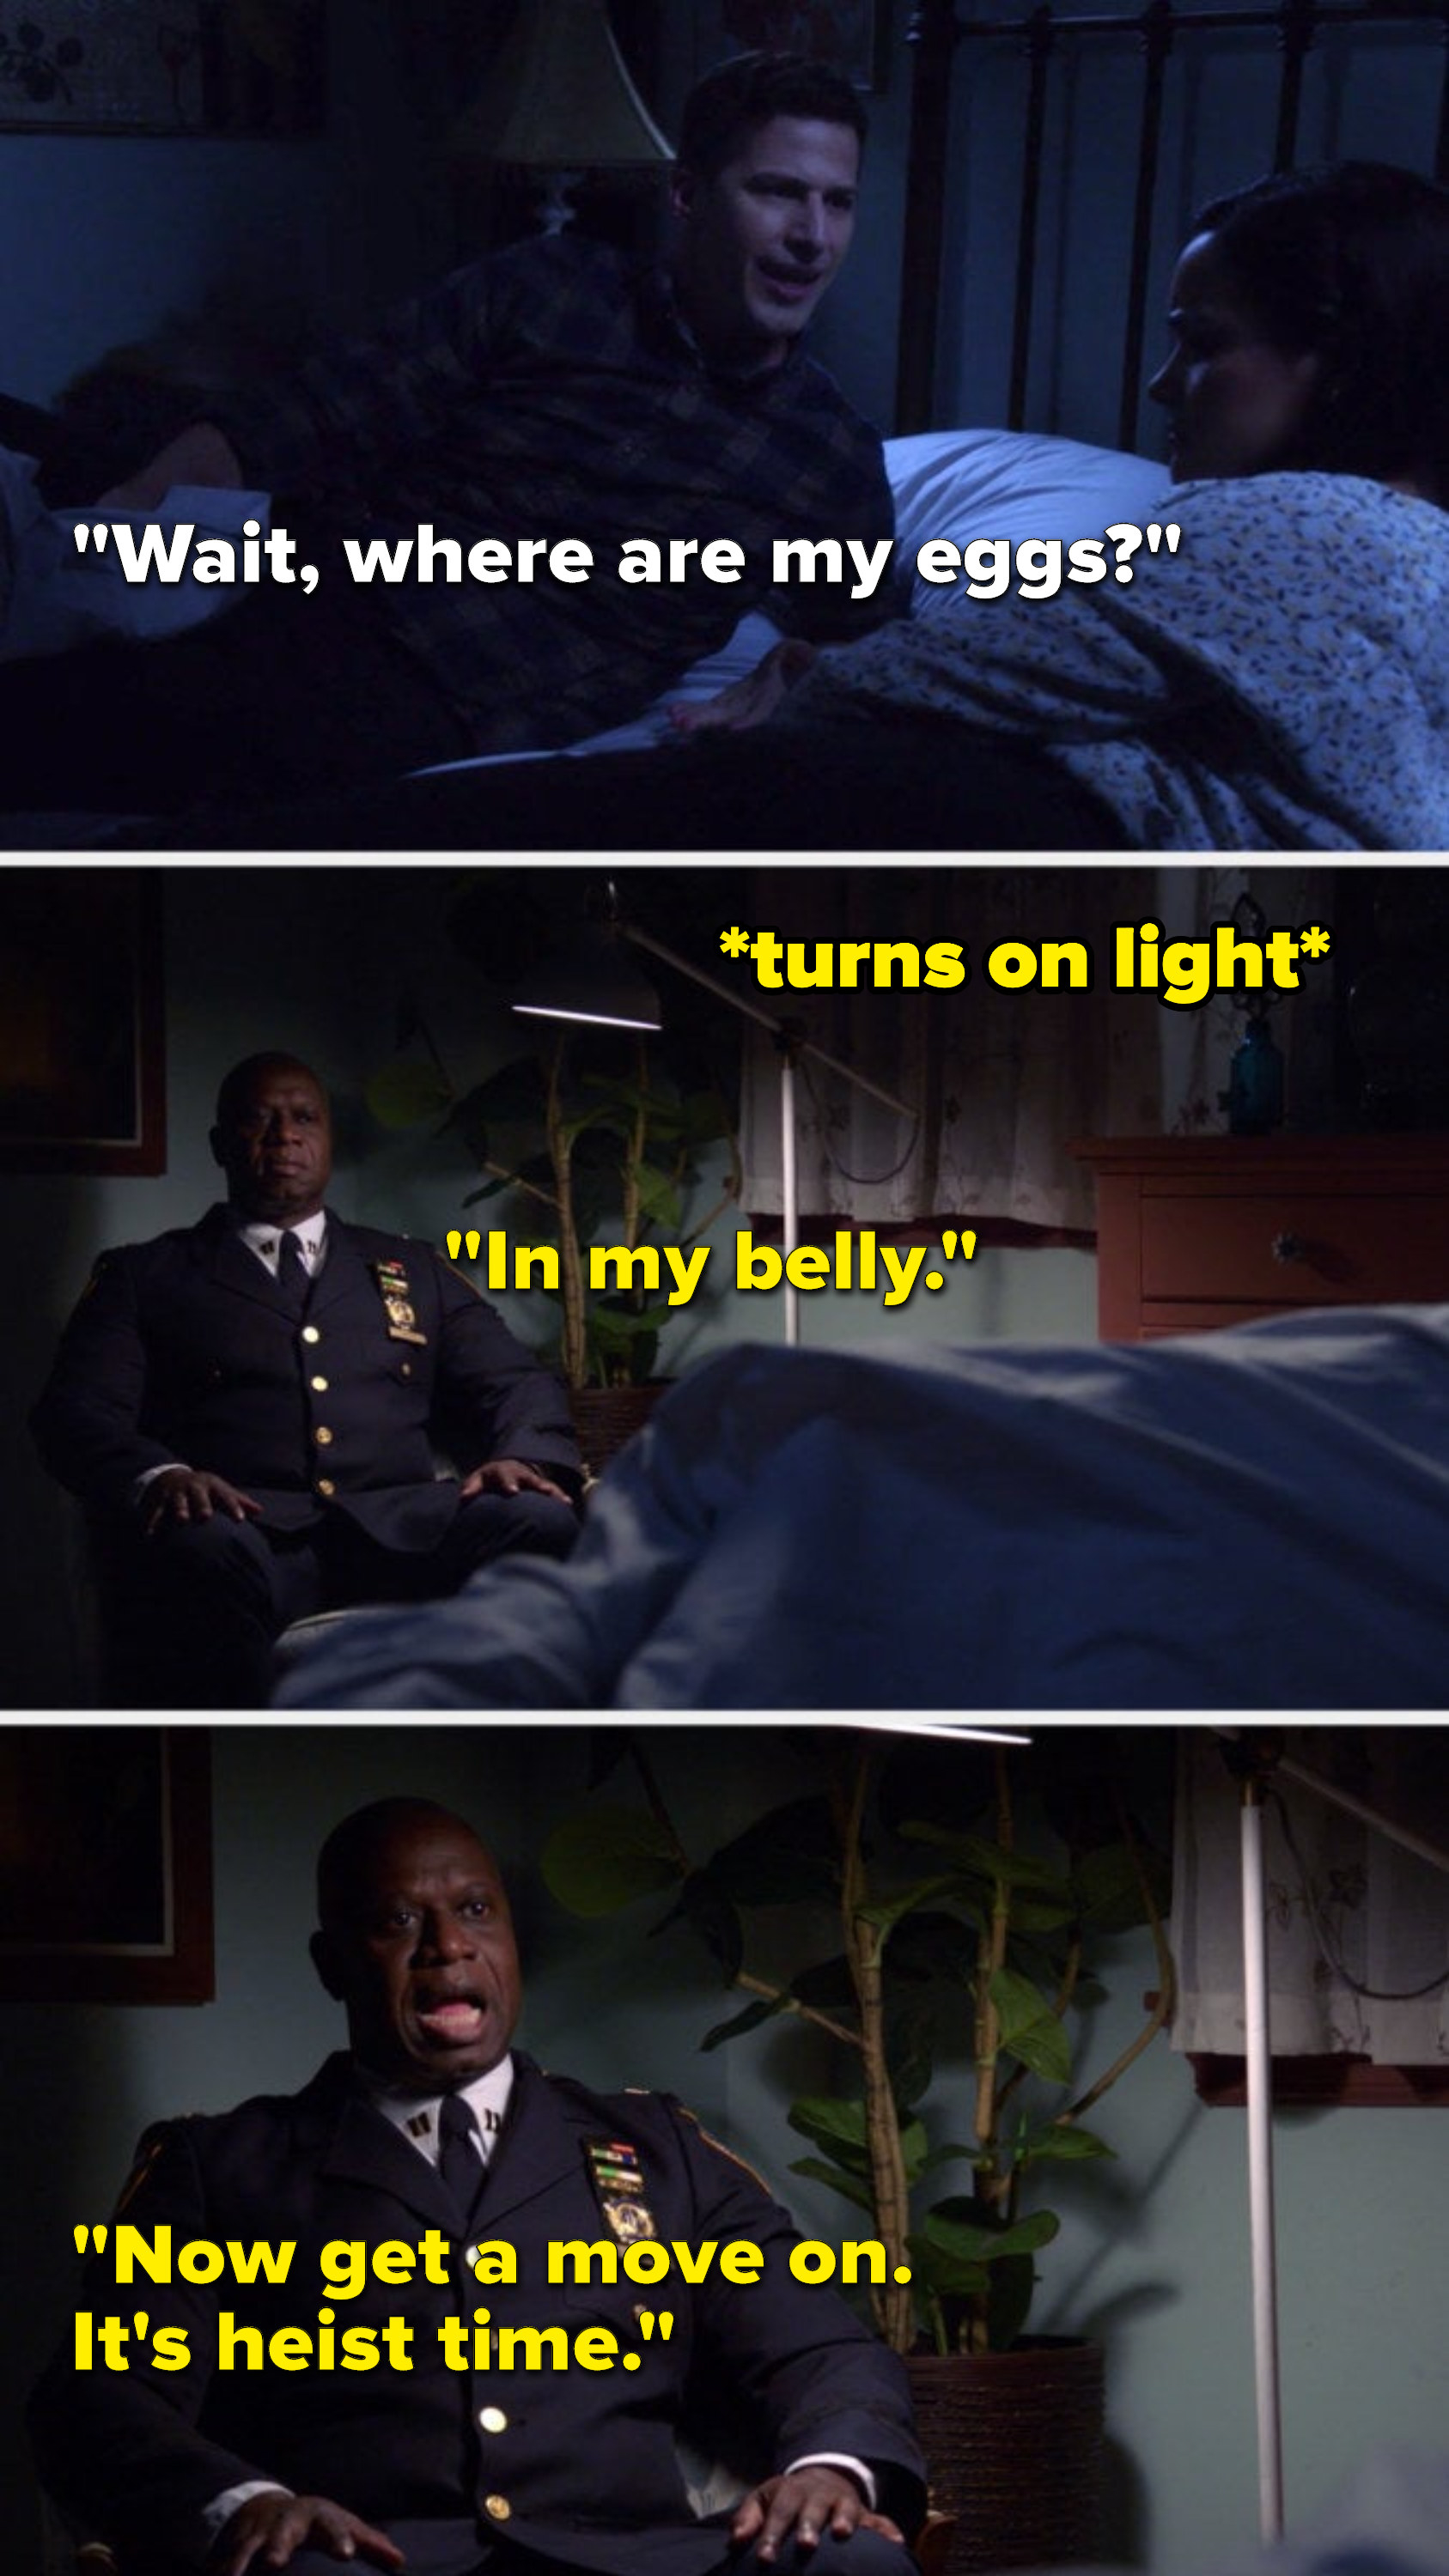 """Jake says, """"Wait, where are my eggs,"""" and Holt turns on a light to reveal himself sitting in a chair in their bedroom and he says, """"In my belly, now get a move on, it's heist time"""""""